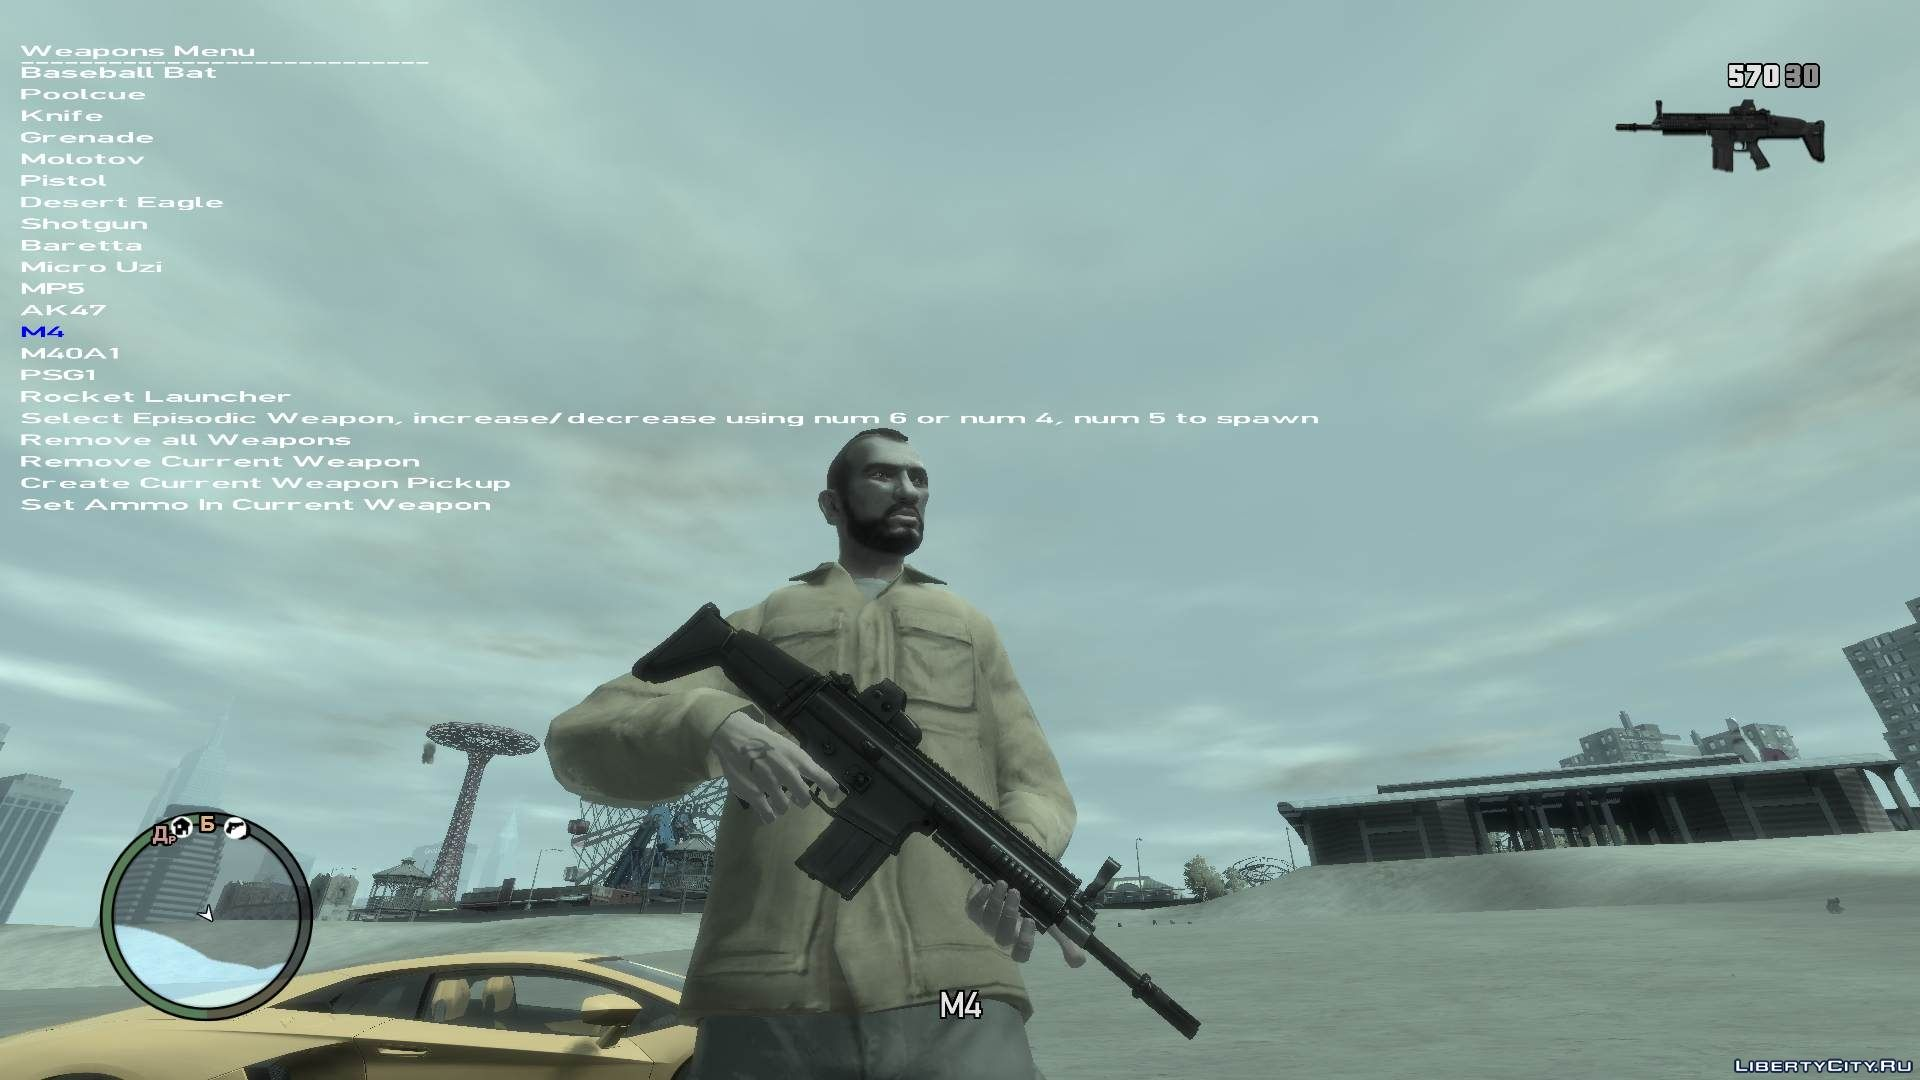 Replacement of weapons img in GTA 4 (14 file)